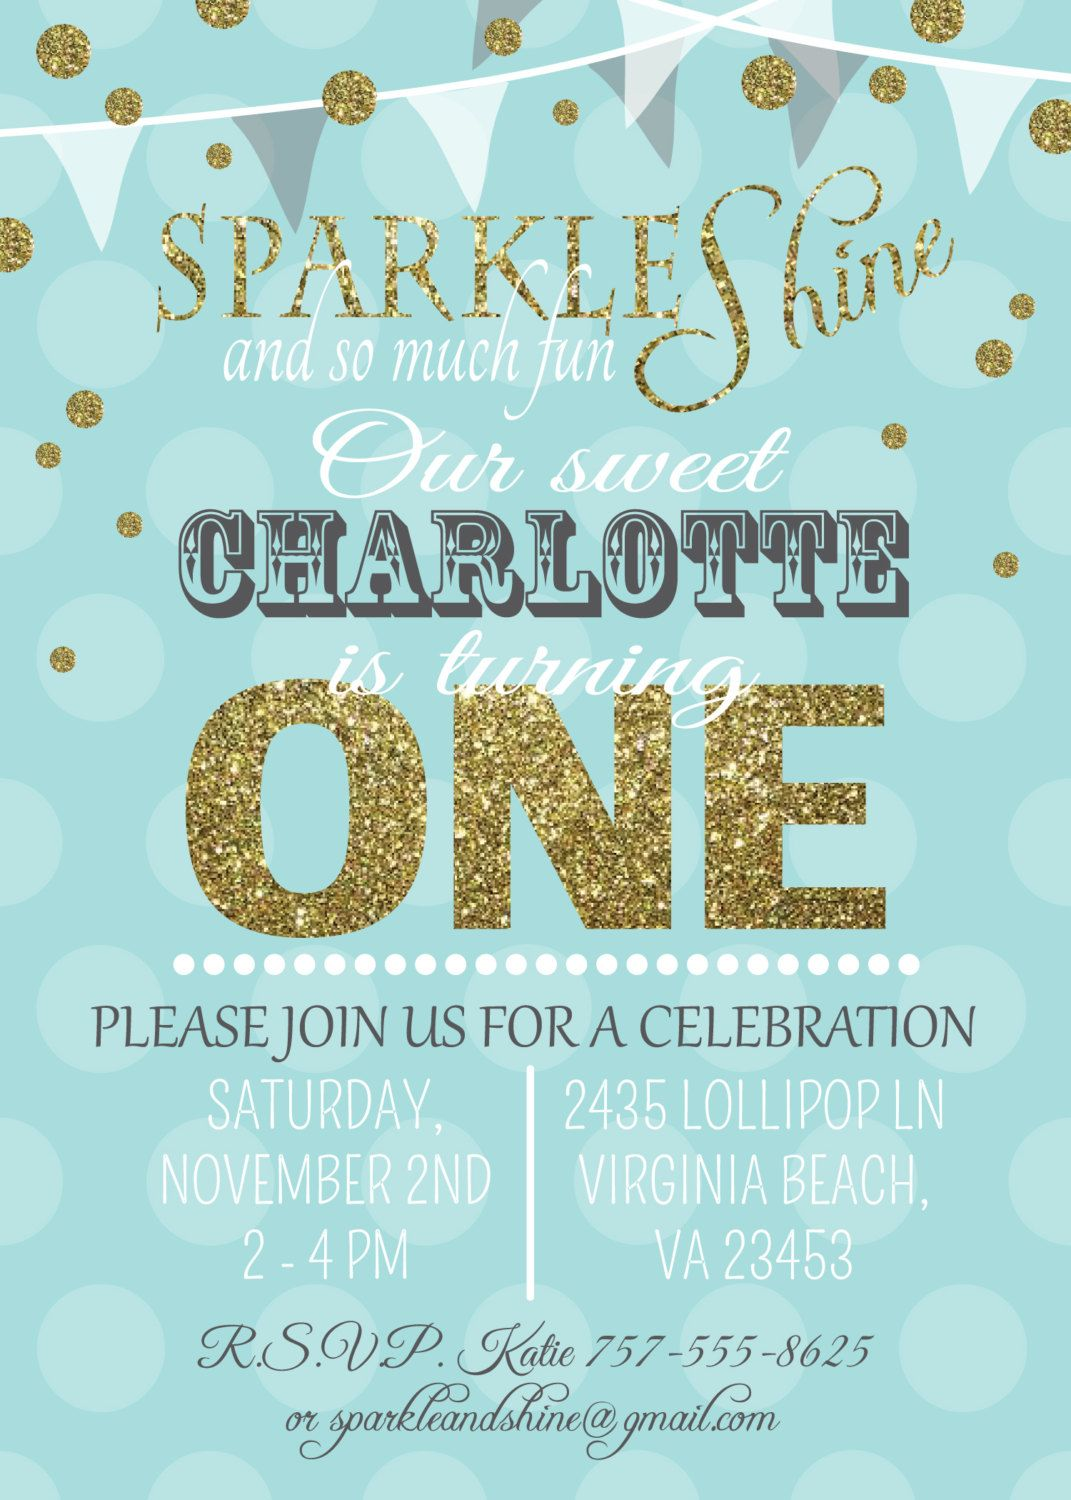 Babys first birthday invitation aqua and gold sparkle and shine babys first birthday invitation aqua and gold sparkle and shine printable by graceandglee on etsy filmwisefo